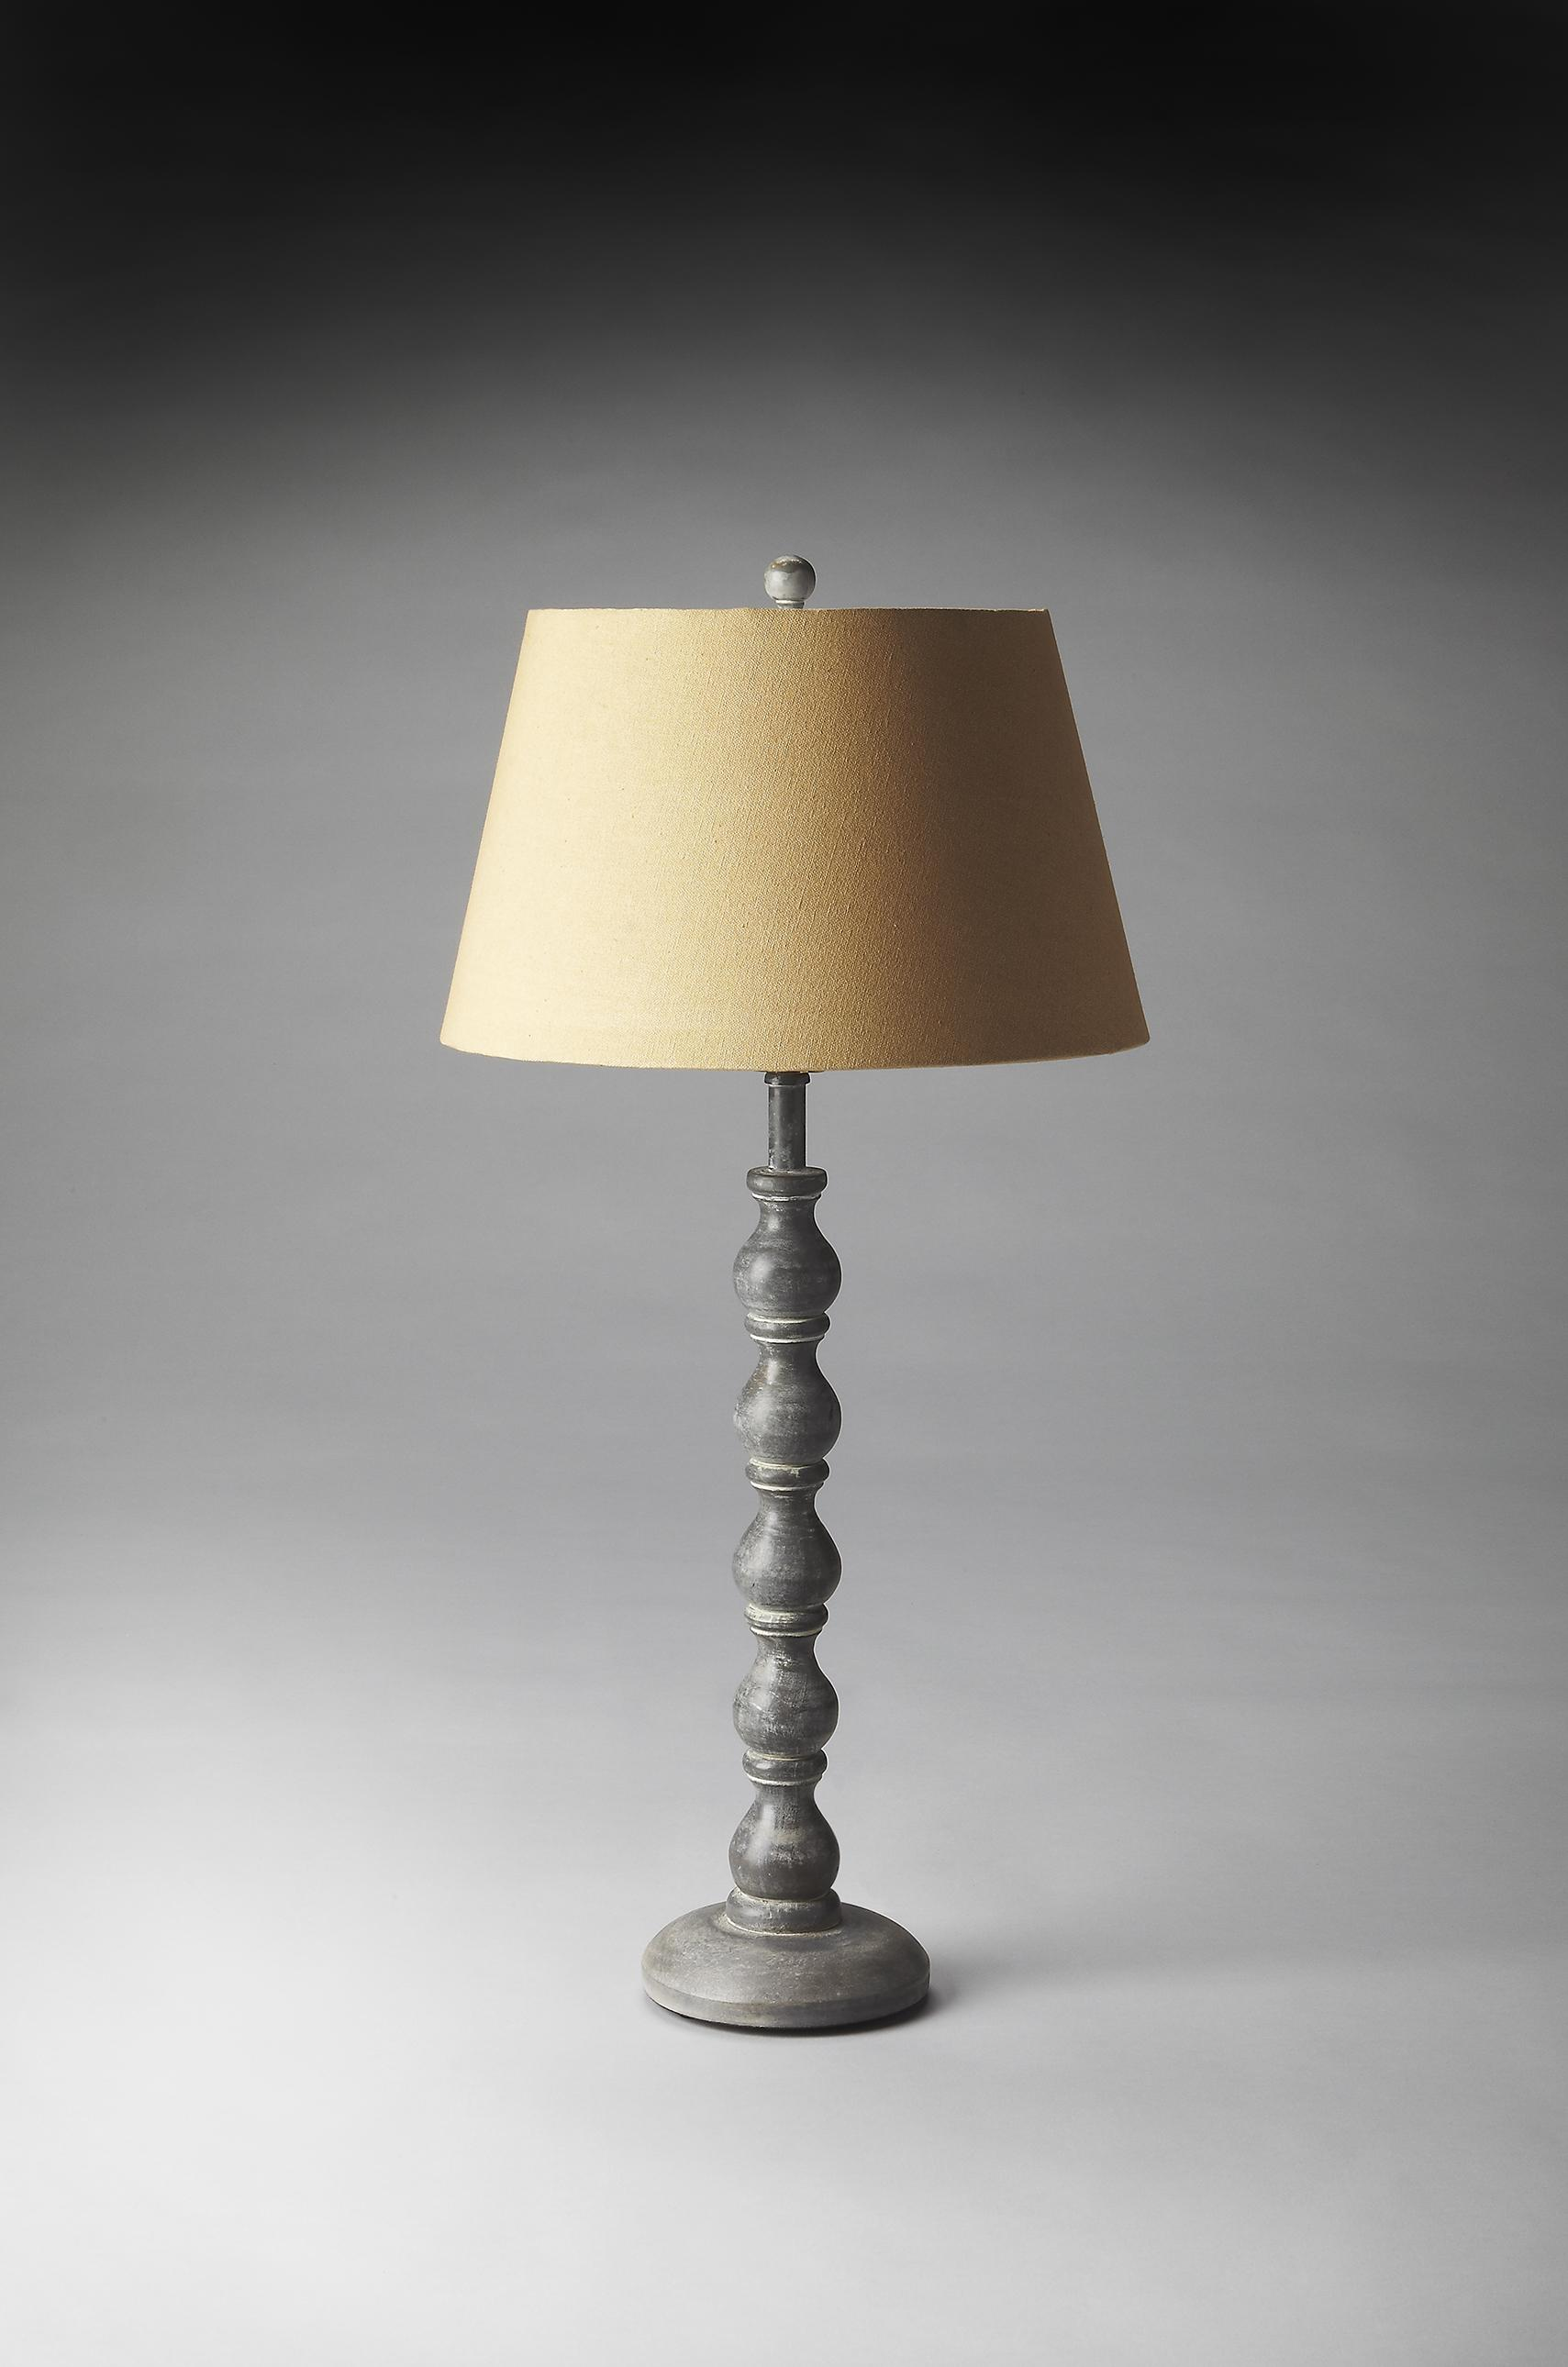 Butler Specialty Company Hors D'oeuvres Table Lamp - Item Number: 7141116